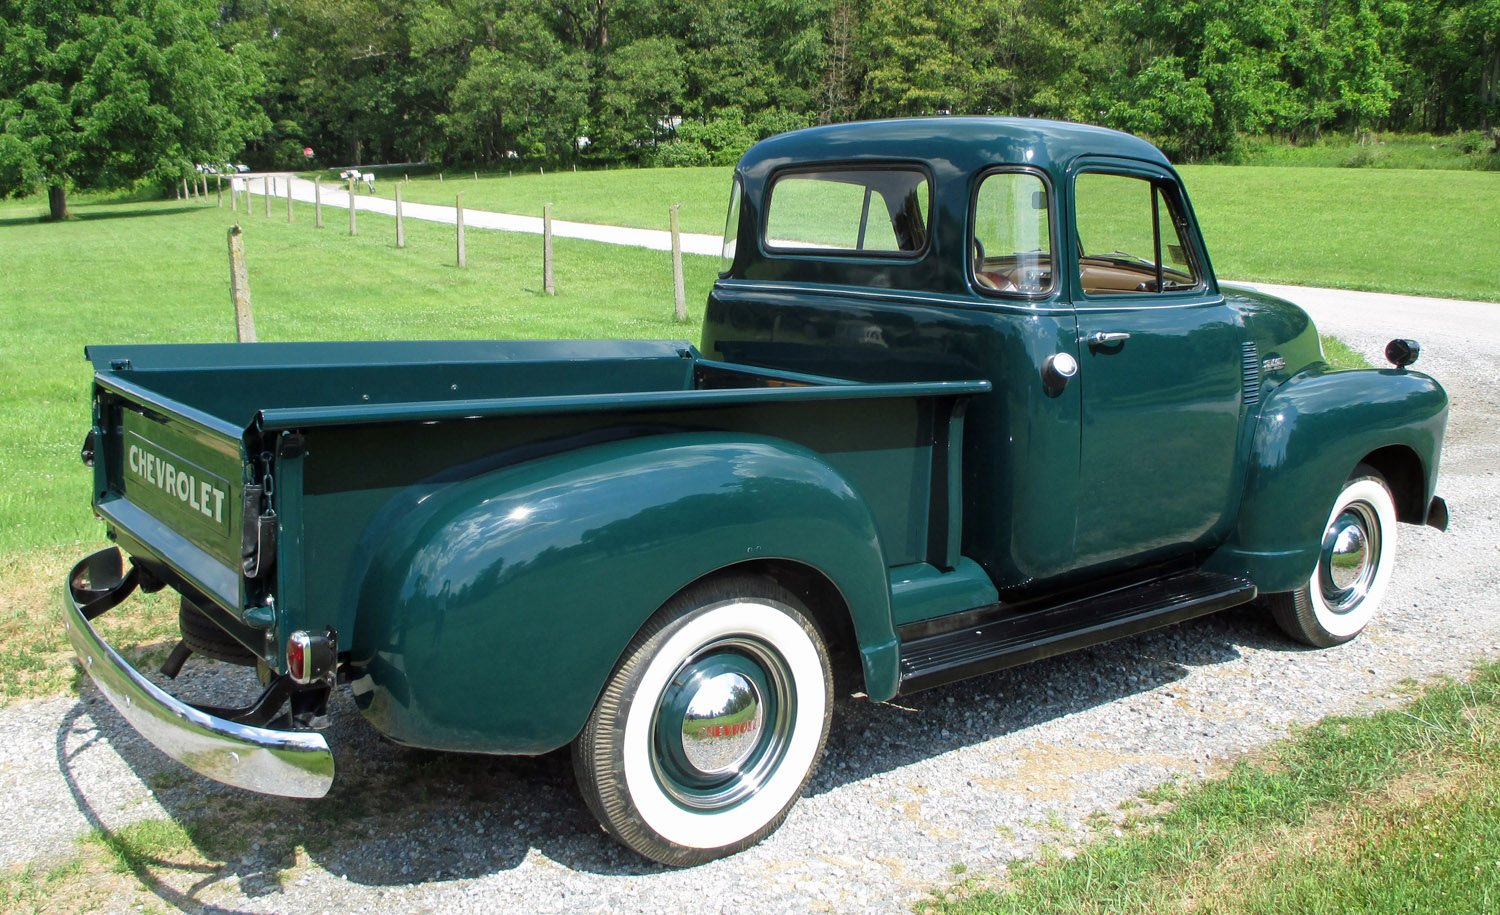 1952 Chevrolet 5-Window Pickup